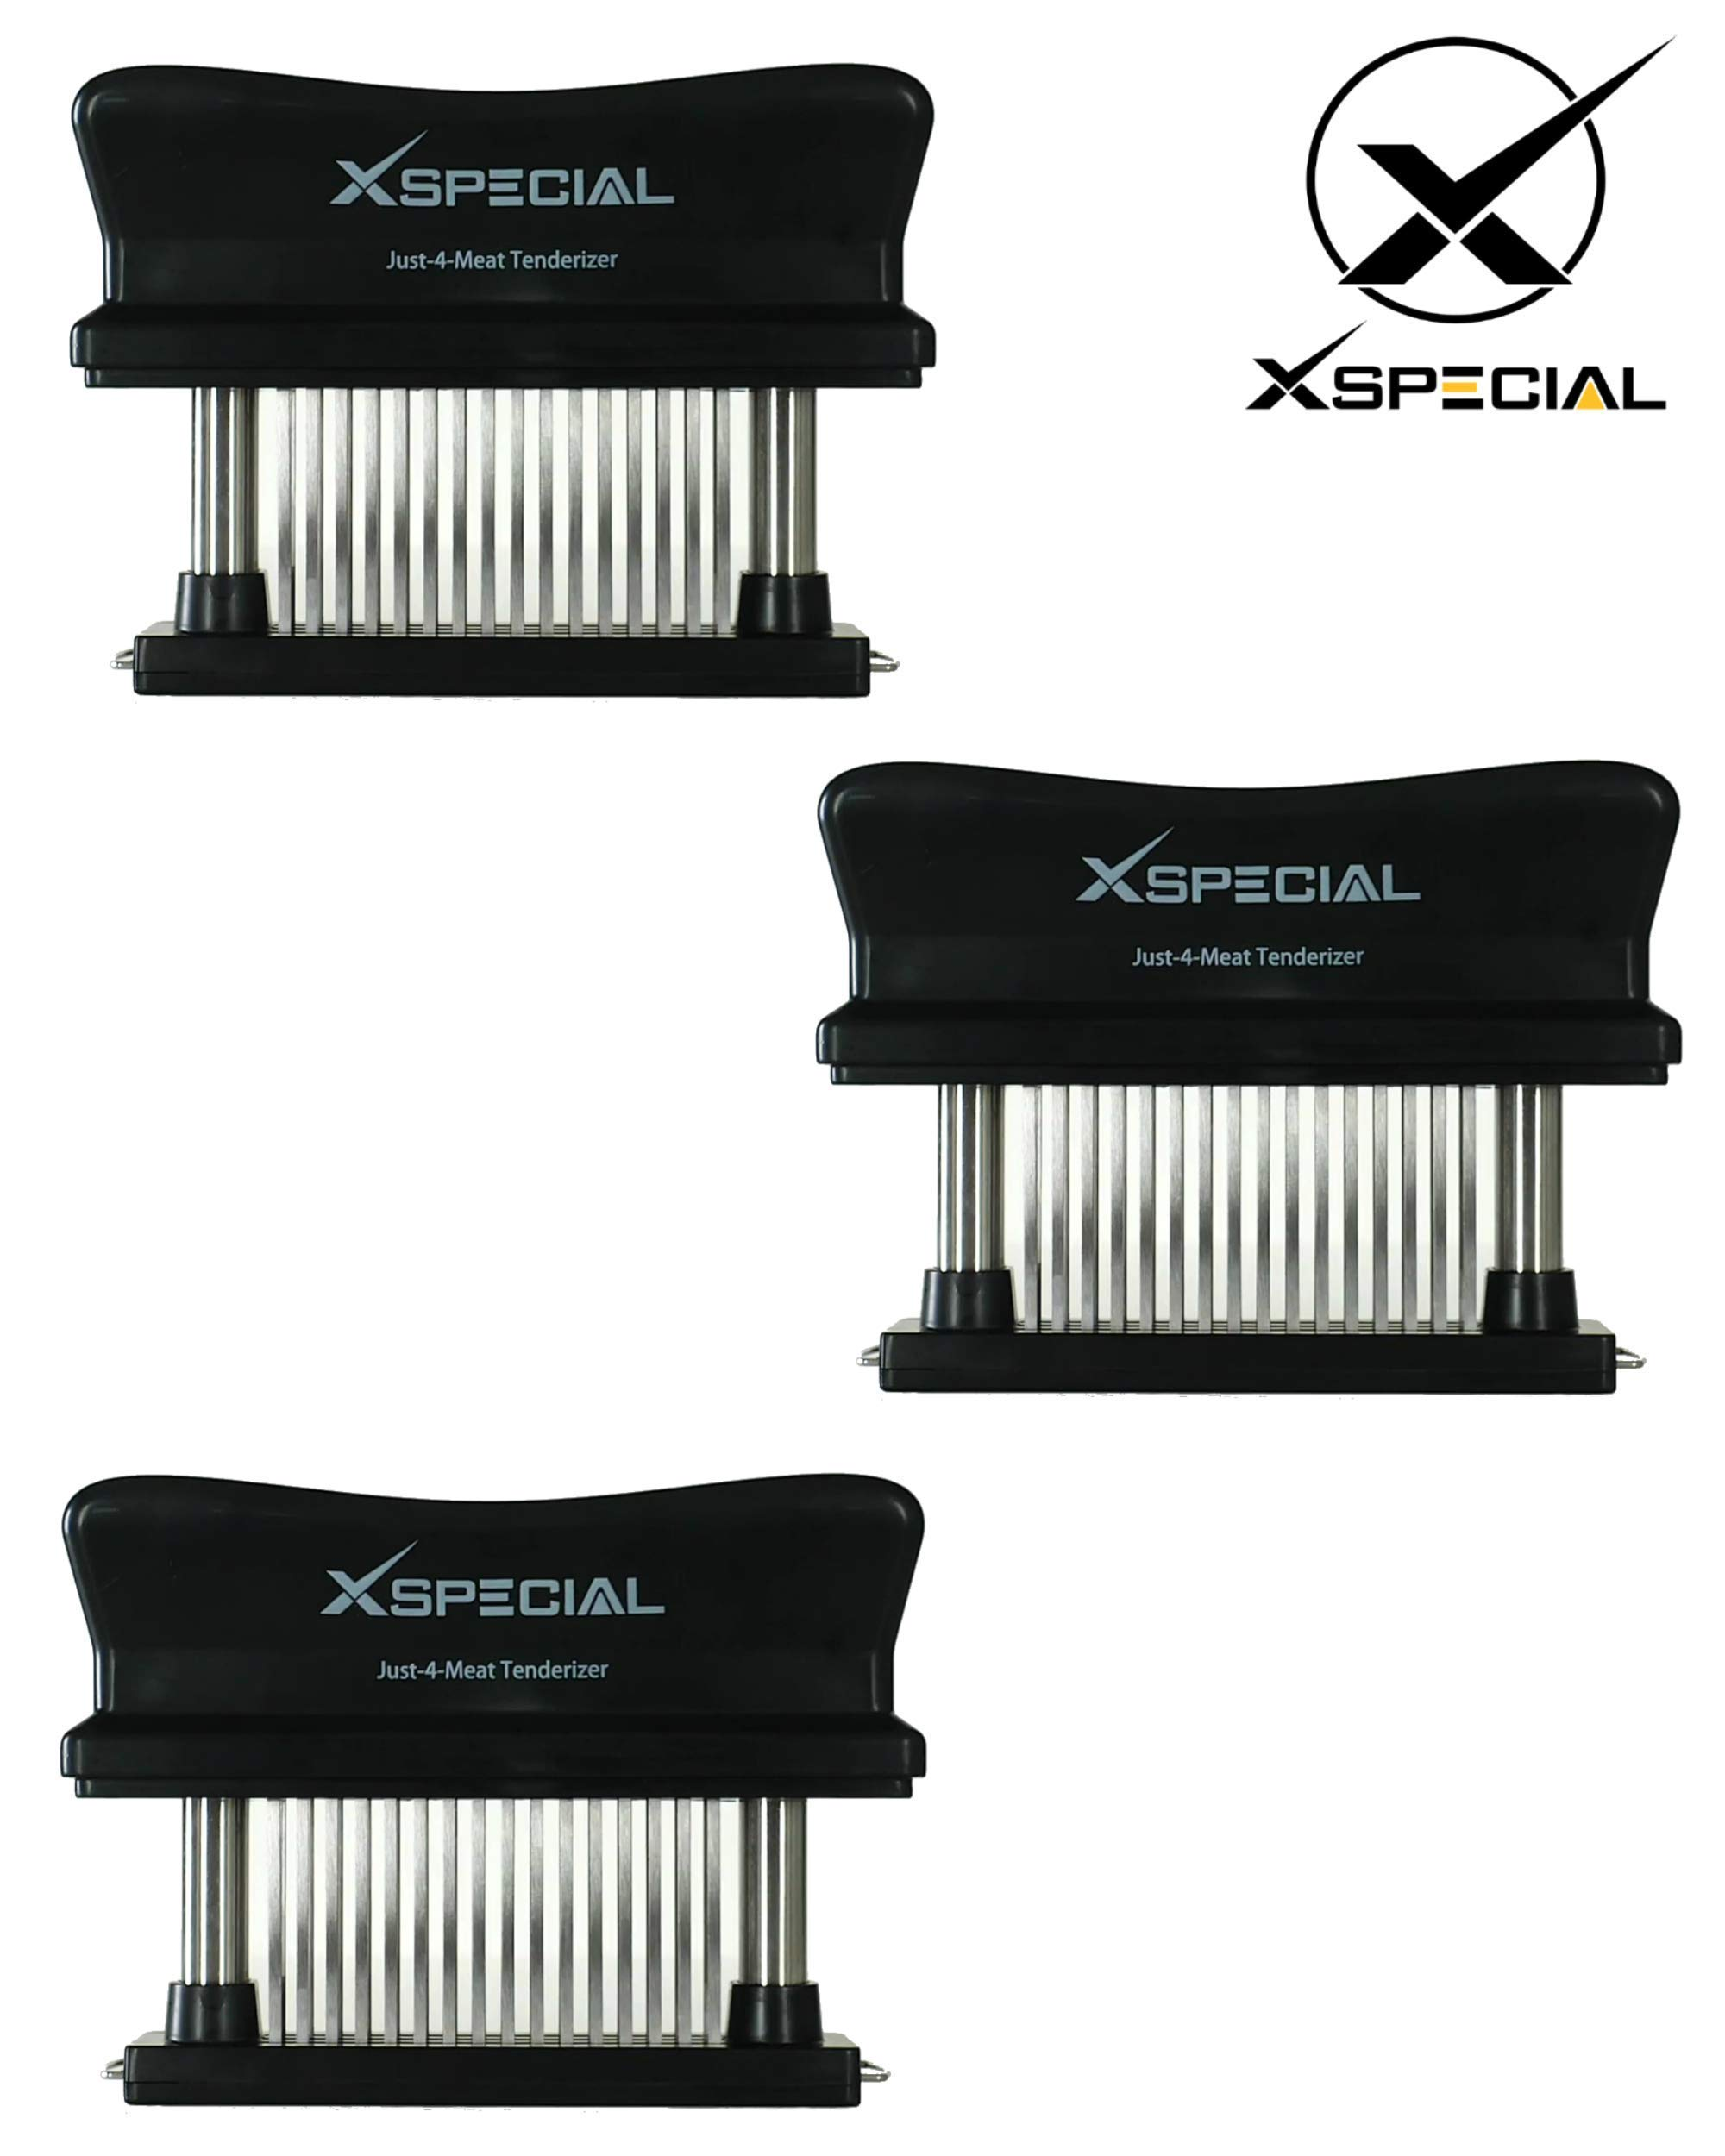 KITCHEN TENDERIZER VALUE PACK > Professional Just-4-Meat Tenderizer By XSpecial - Home Sturdy Gadget for Tenderizing: Steak Beef Poultry (3 Packs,Black 48 Blades Stainless Steel,Individually Boxed)